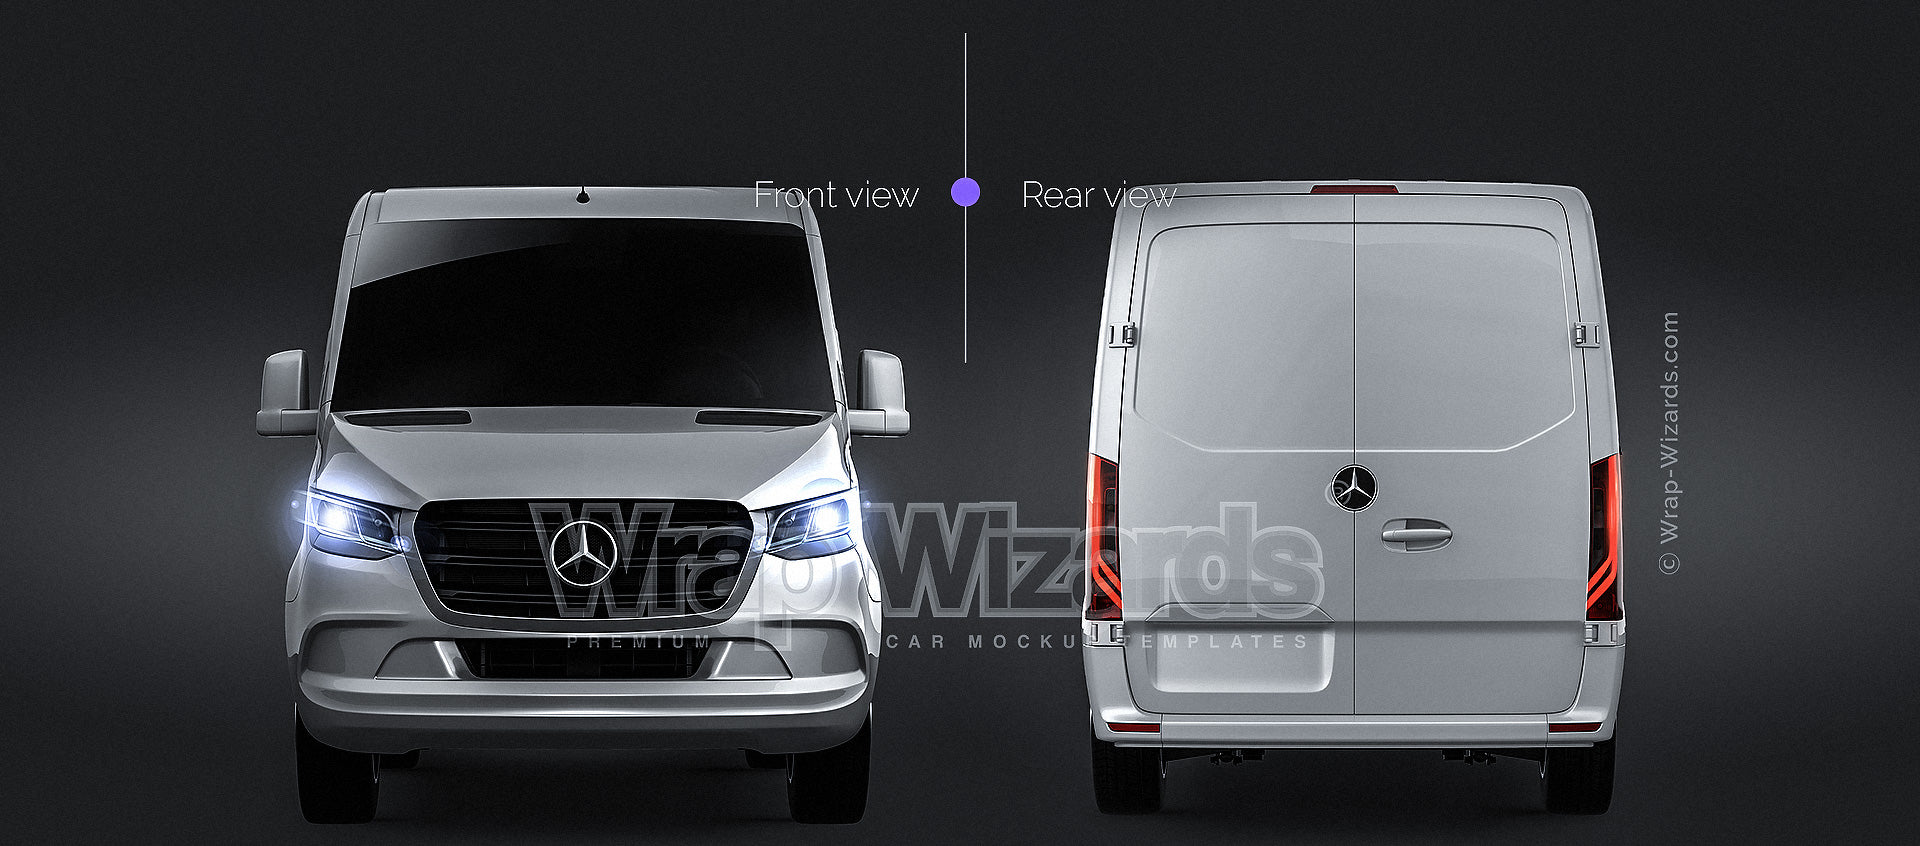 Mercedes-Benz Sprinter Compact Short L1H1 2019 glossy finish - all sides Car Mockup Template.psd